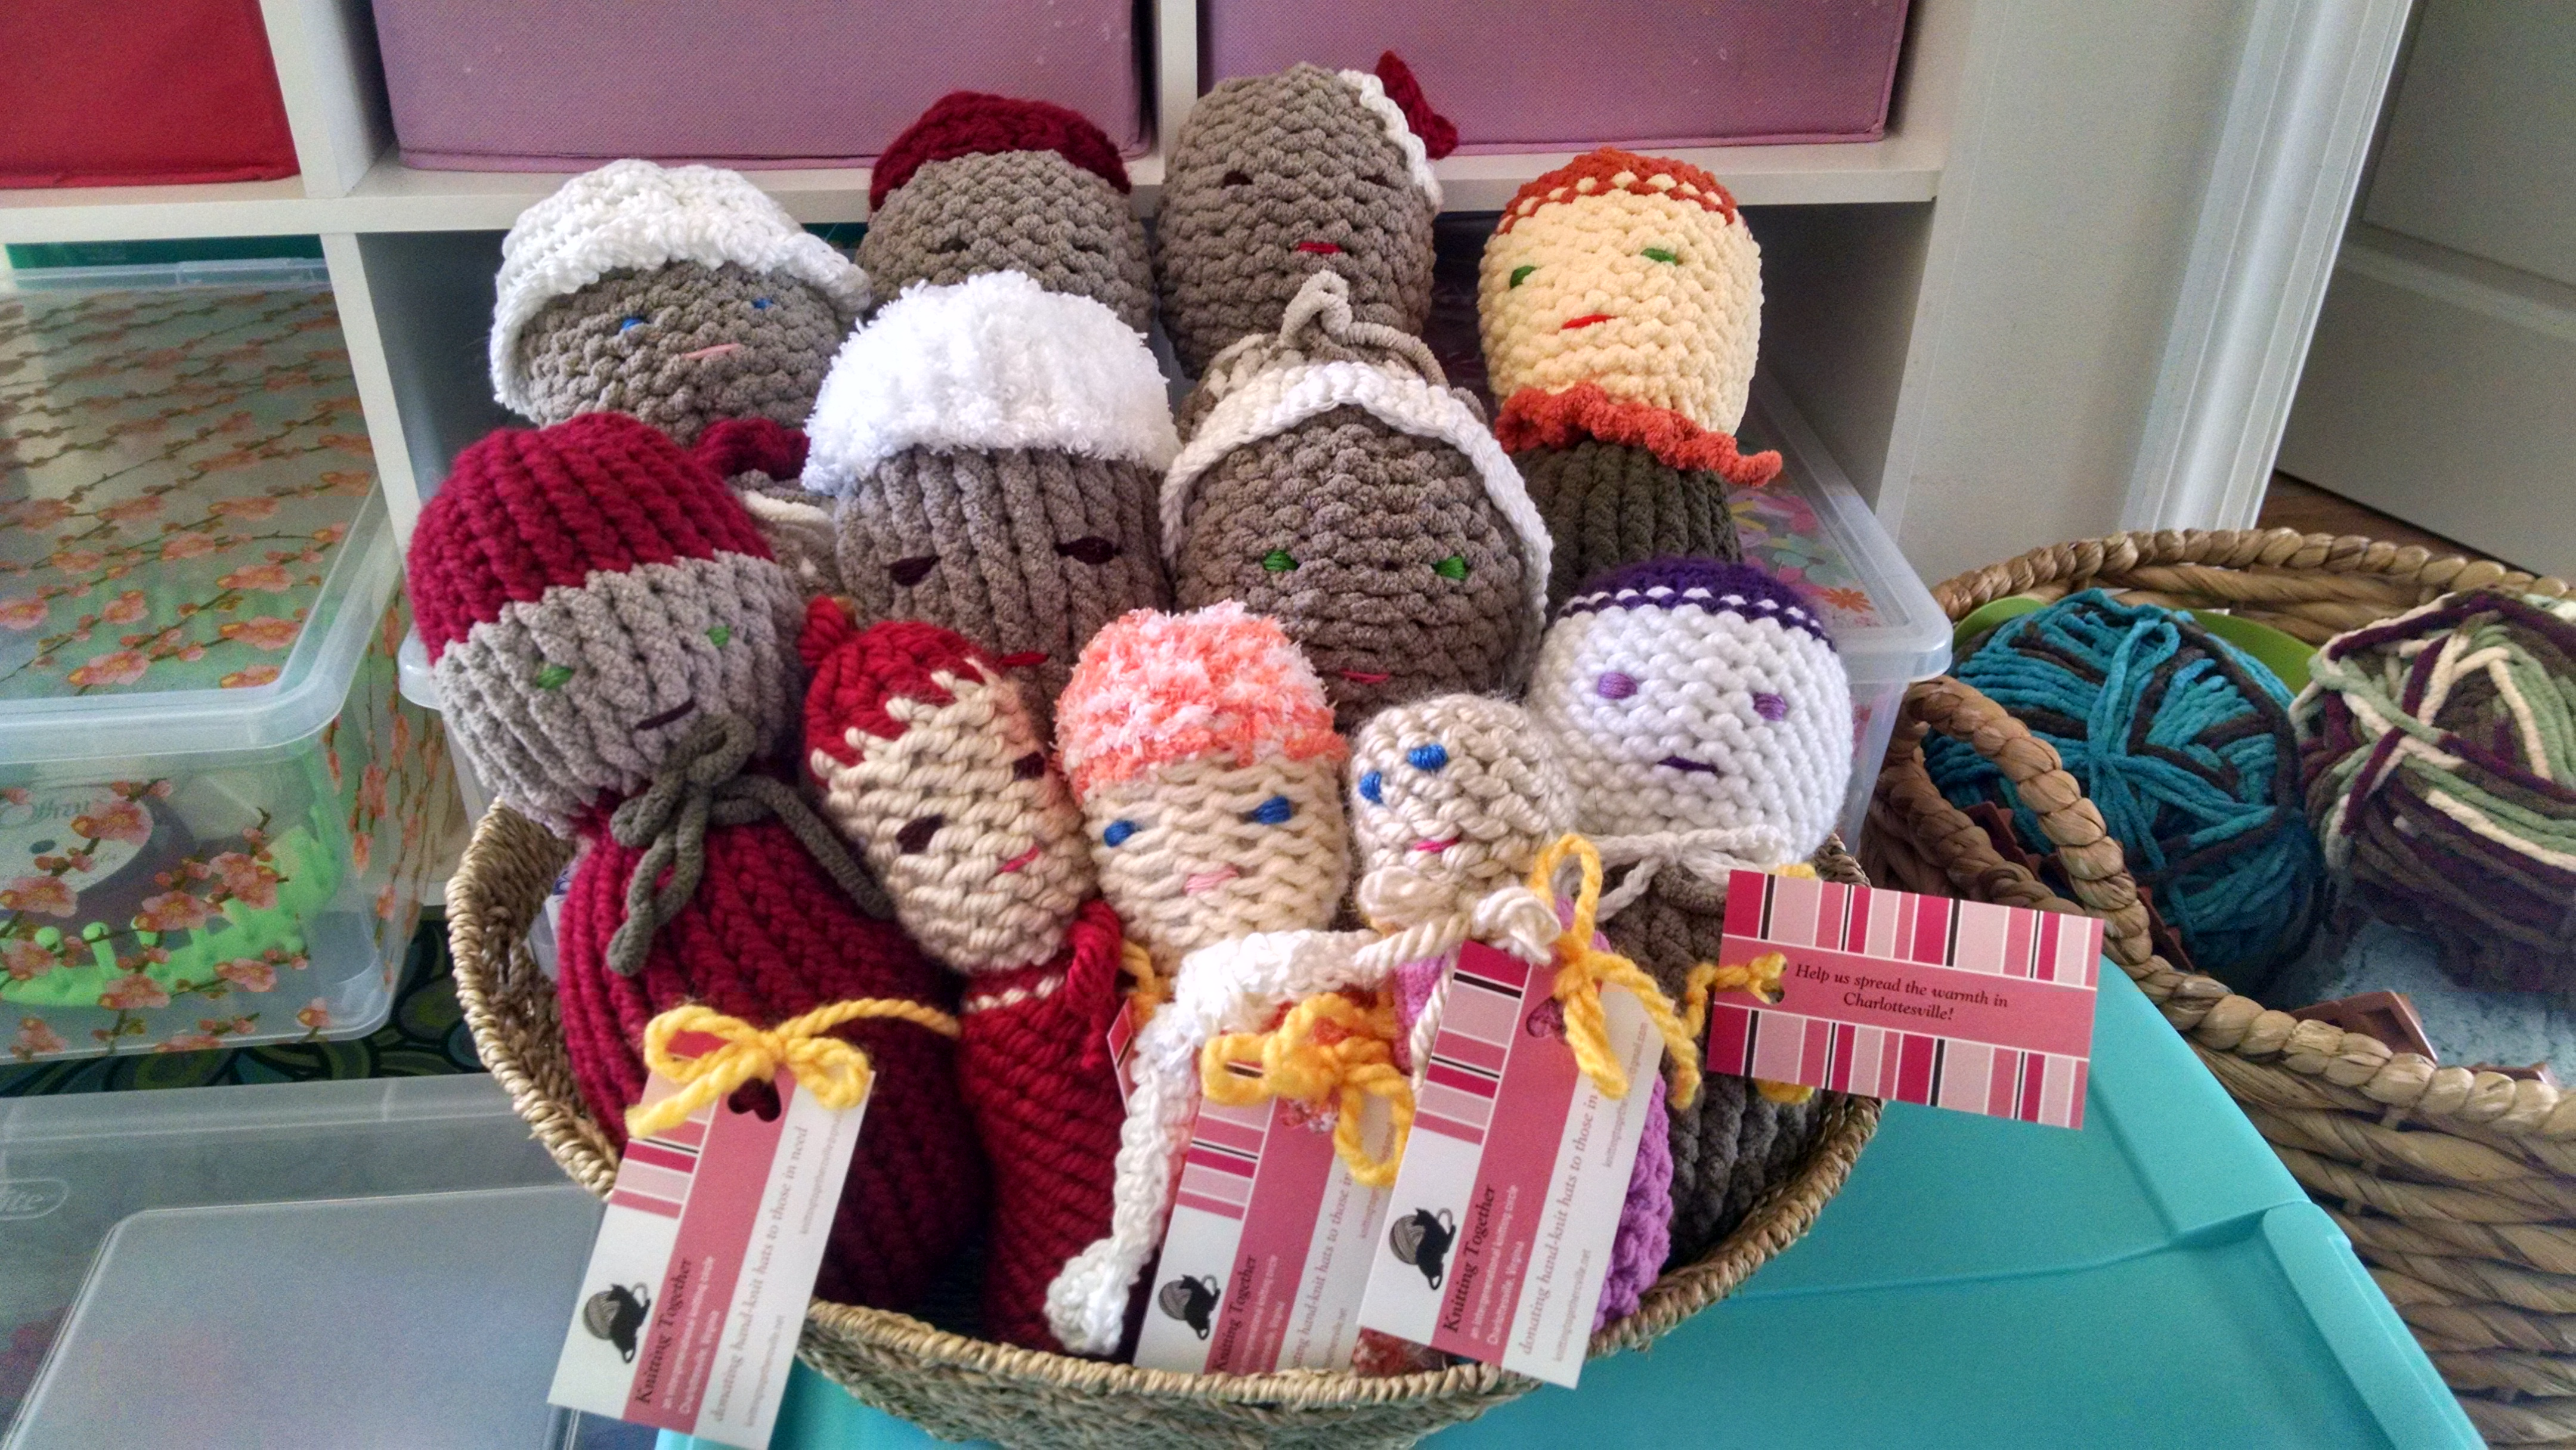 Nancys Comfort Dolls Have Hand Crocheted Hats Knitting Together